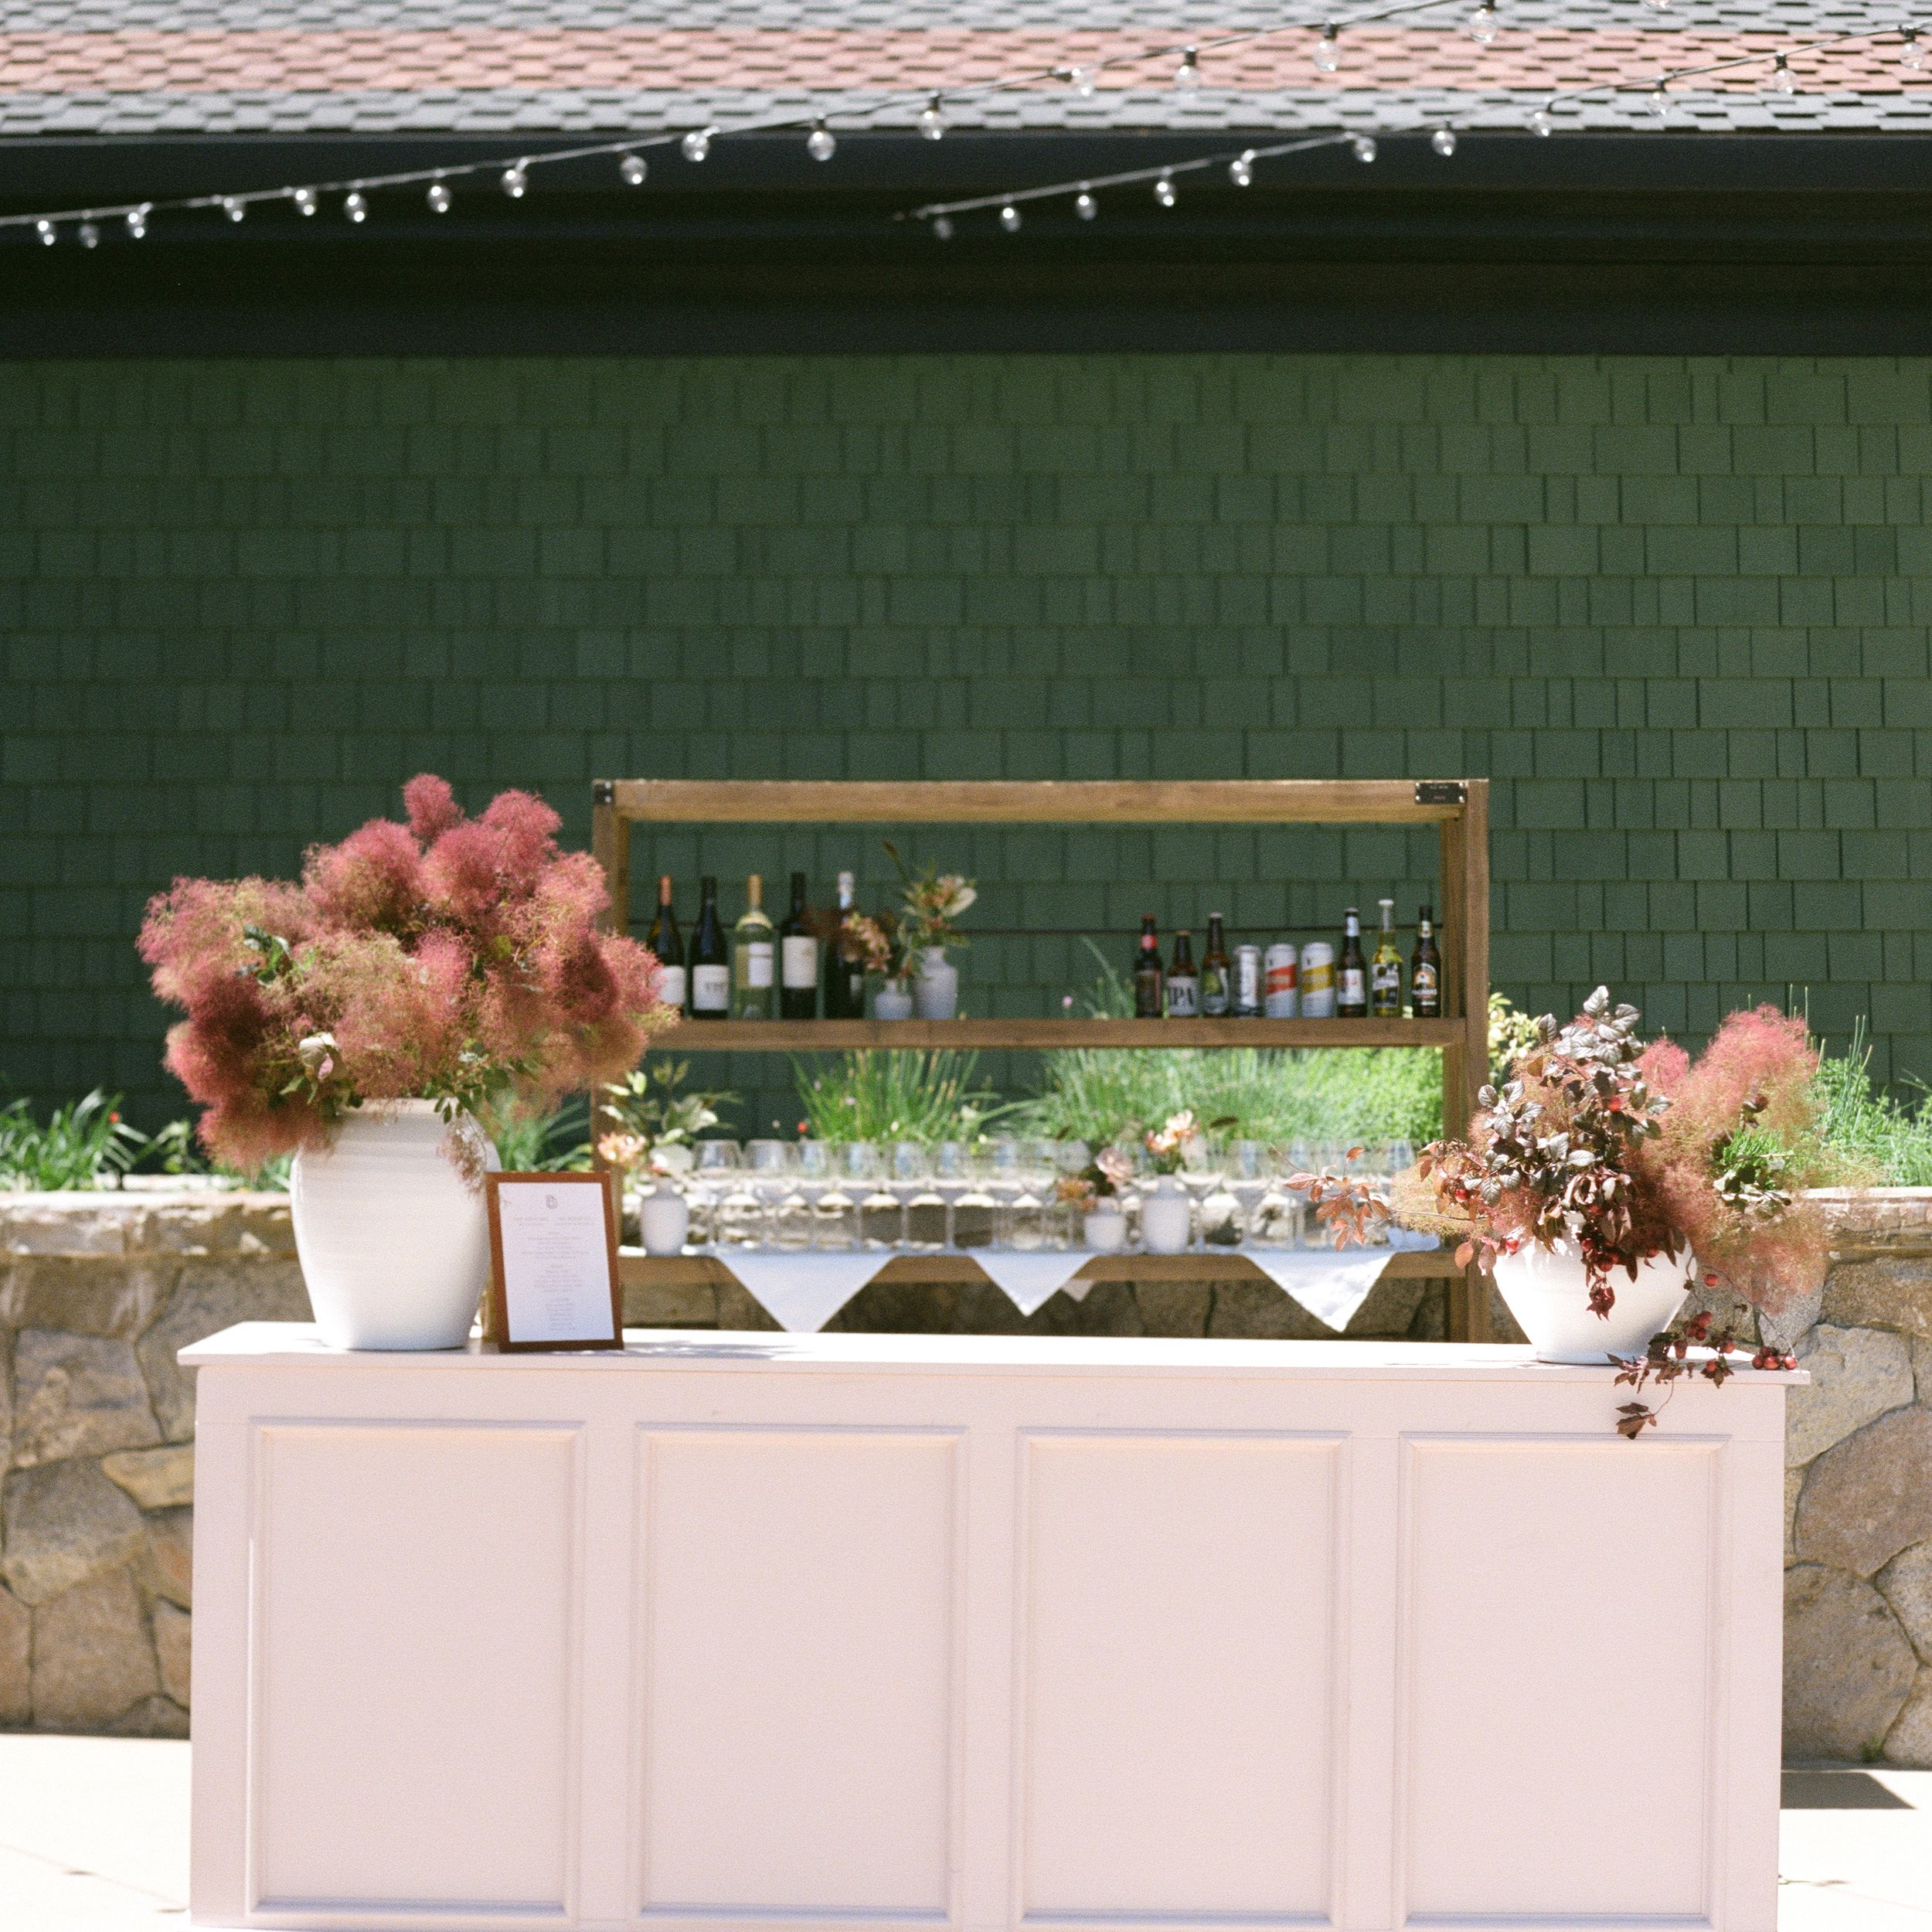 Bar Service Options for Your Wedding